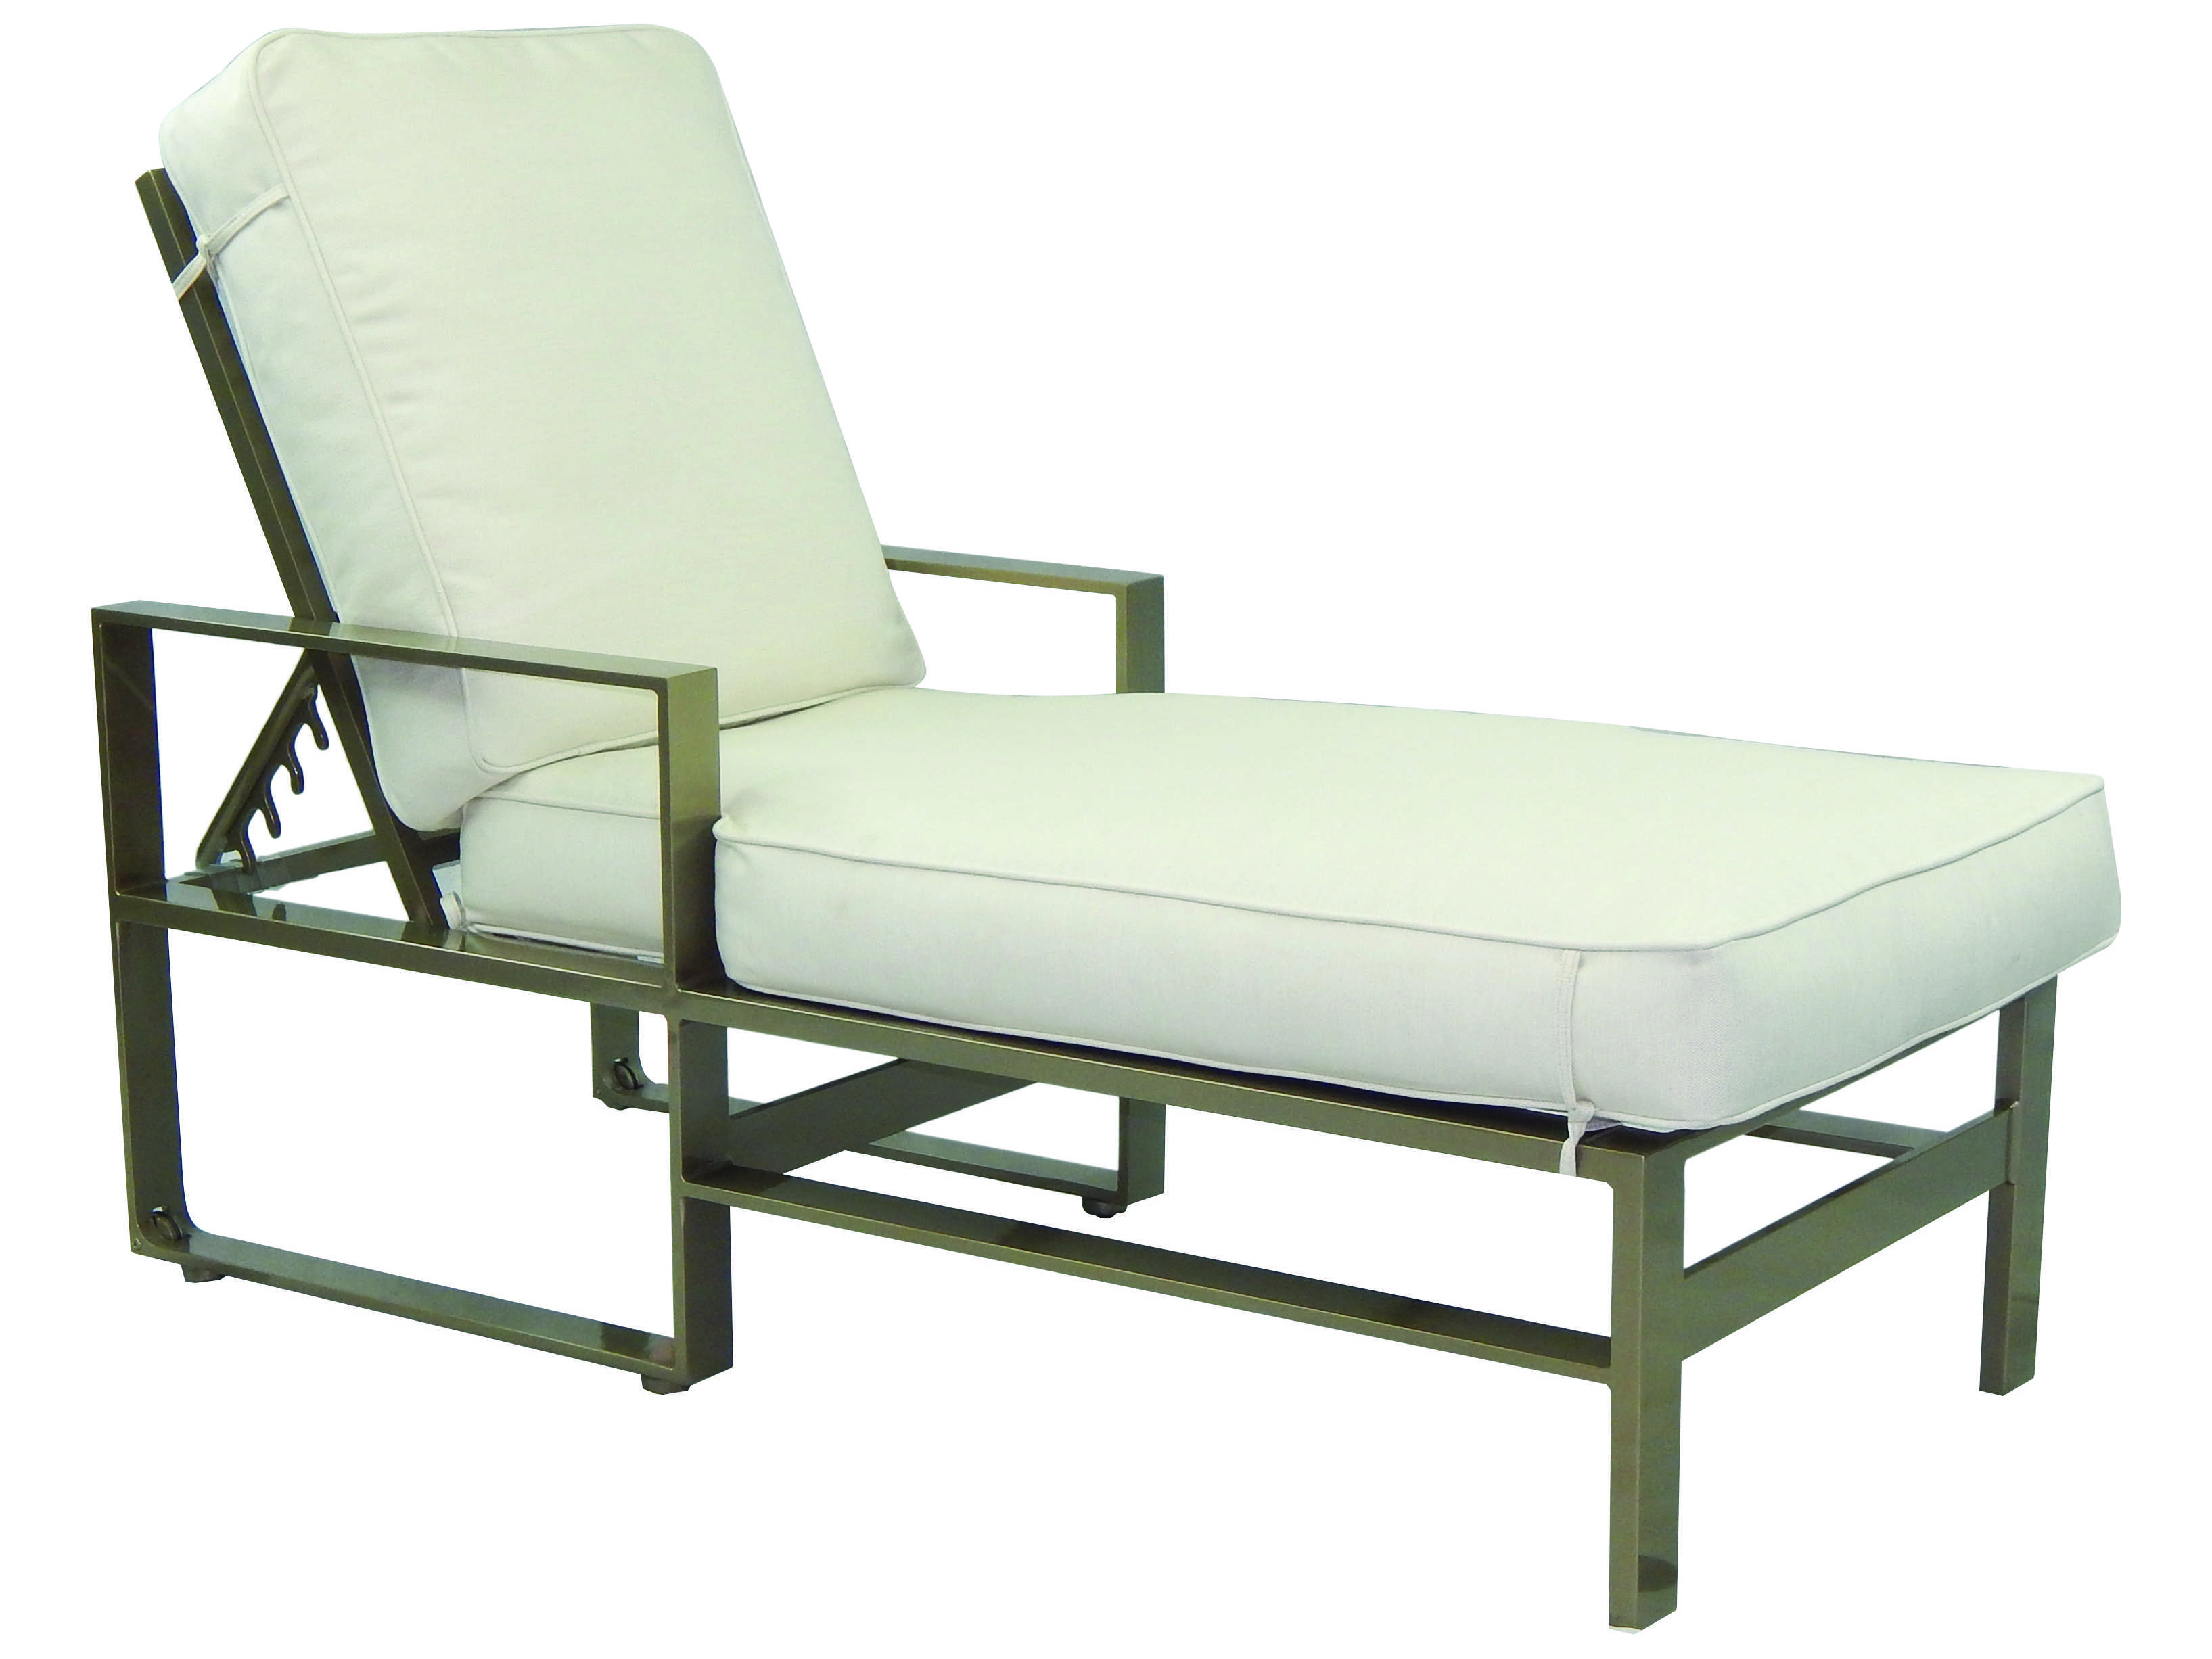 Castelle park place cushion cast aluminum adjustable for Aluminum chaise lounge with wheels